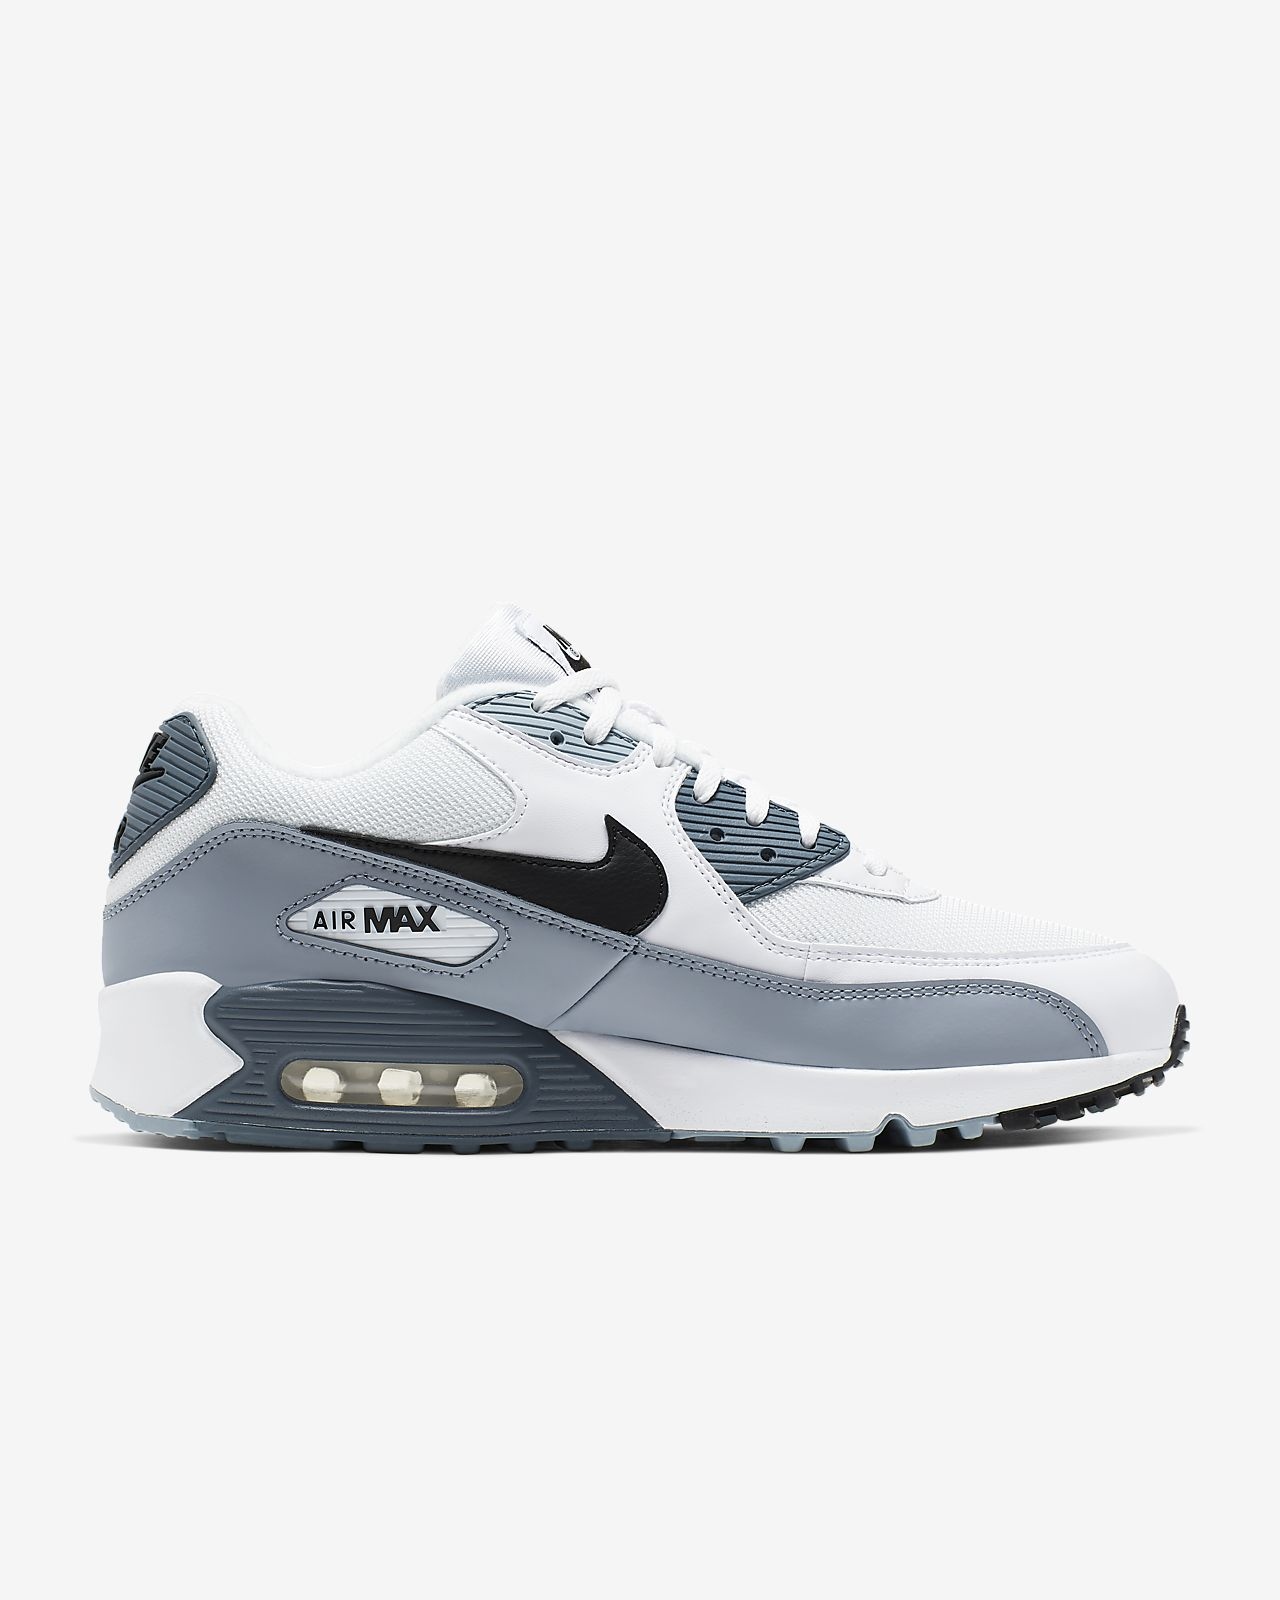 100% authentic 334aa ece04 ... Nike Air Max 90 Essential-sko til mænd